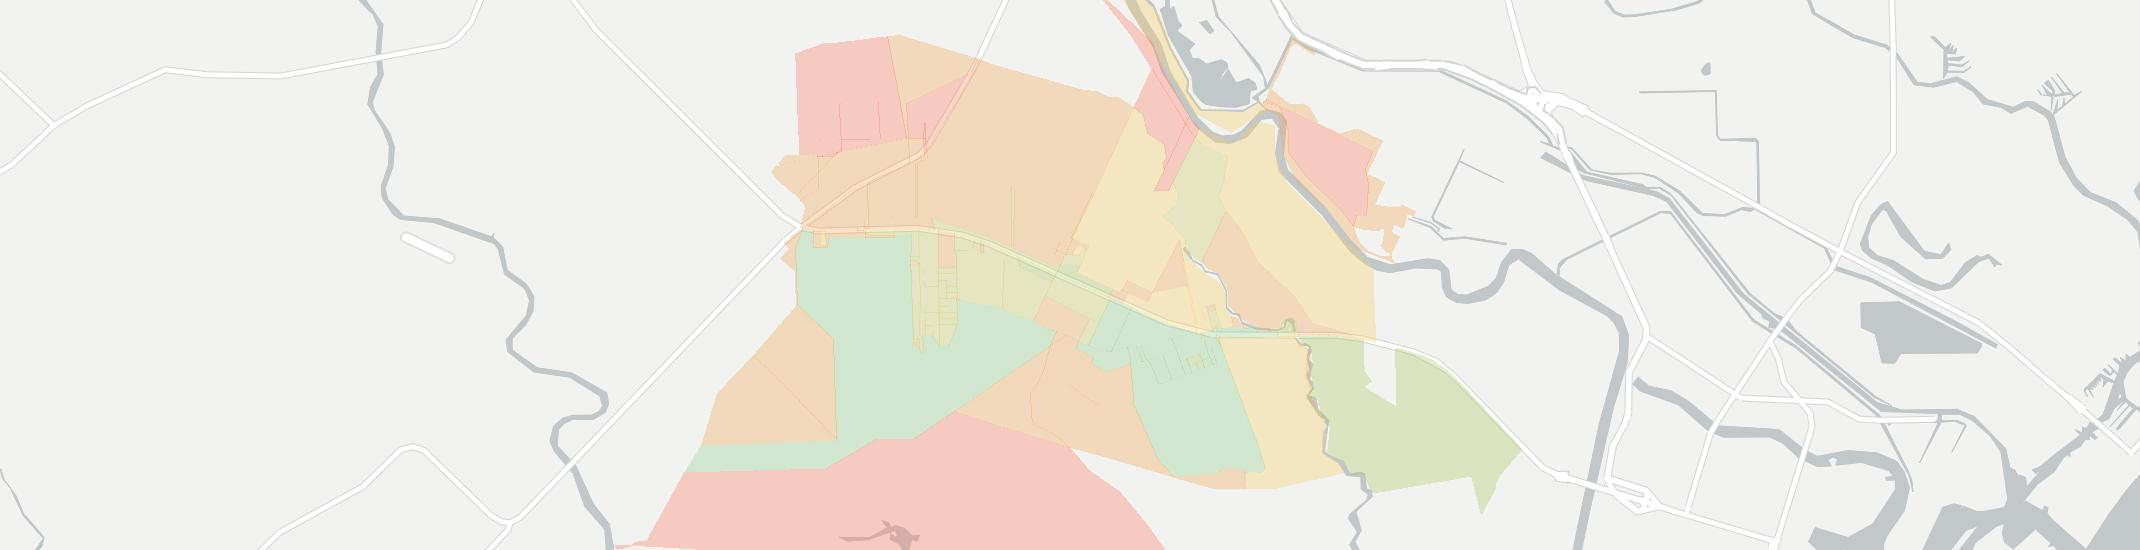 Jones Creek Internet Competition Map. Click for interactive map.